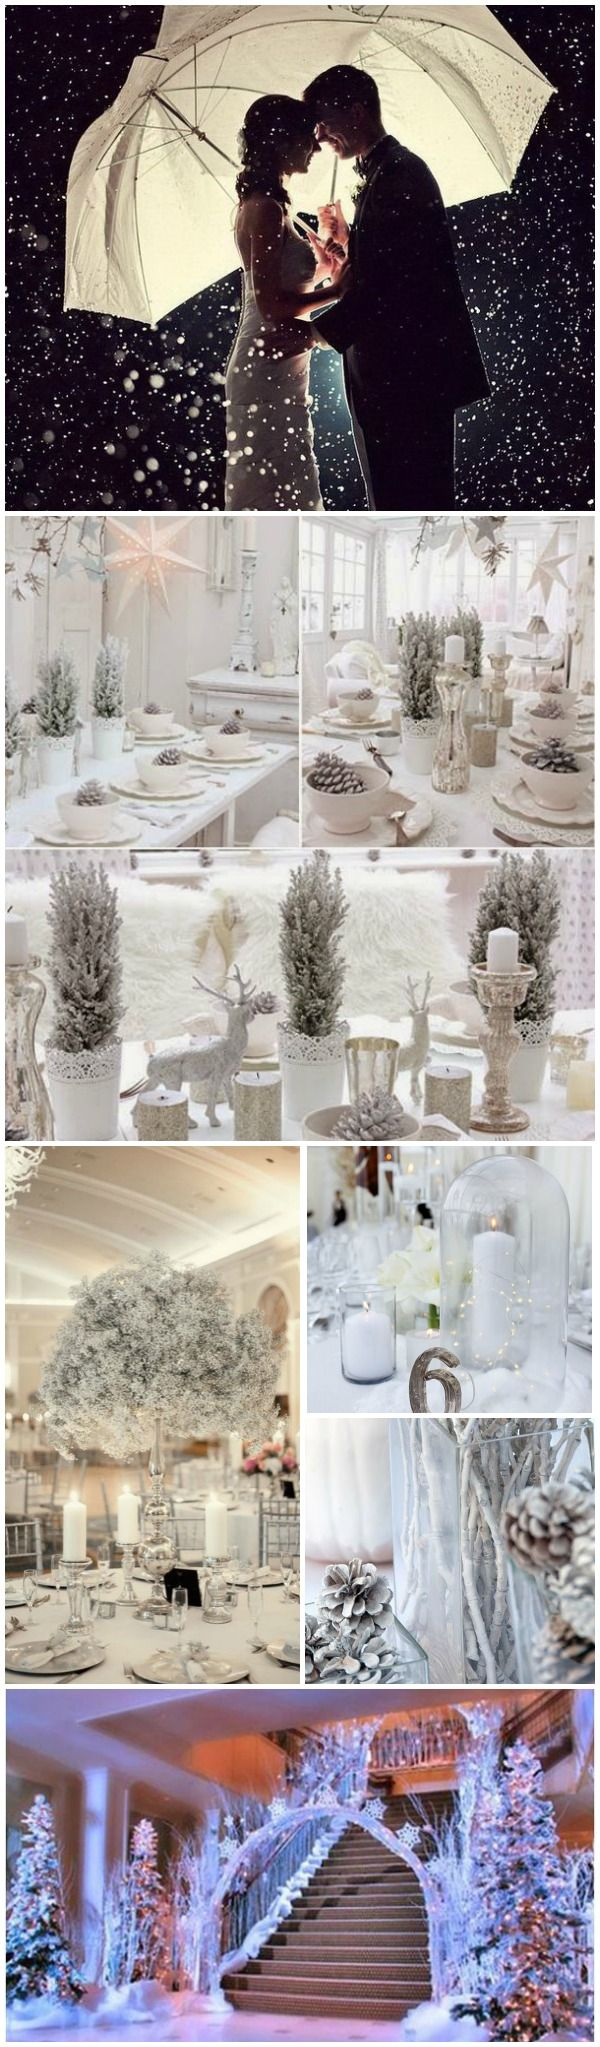 Top 6 Incredible Winter Wonderland Wedding Decorations Ideas ...